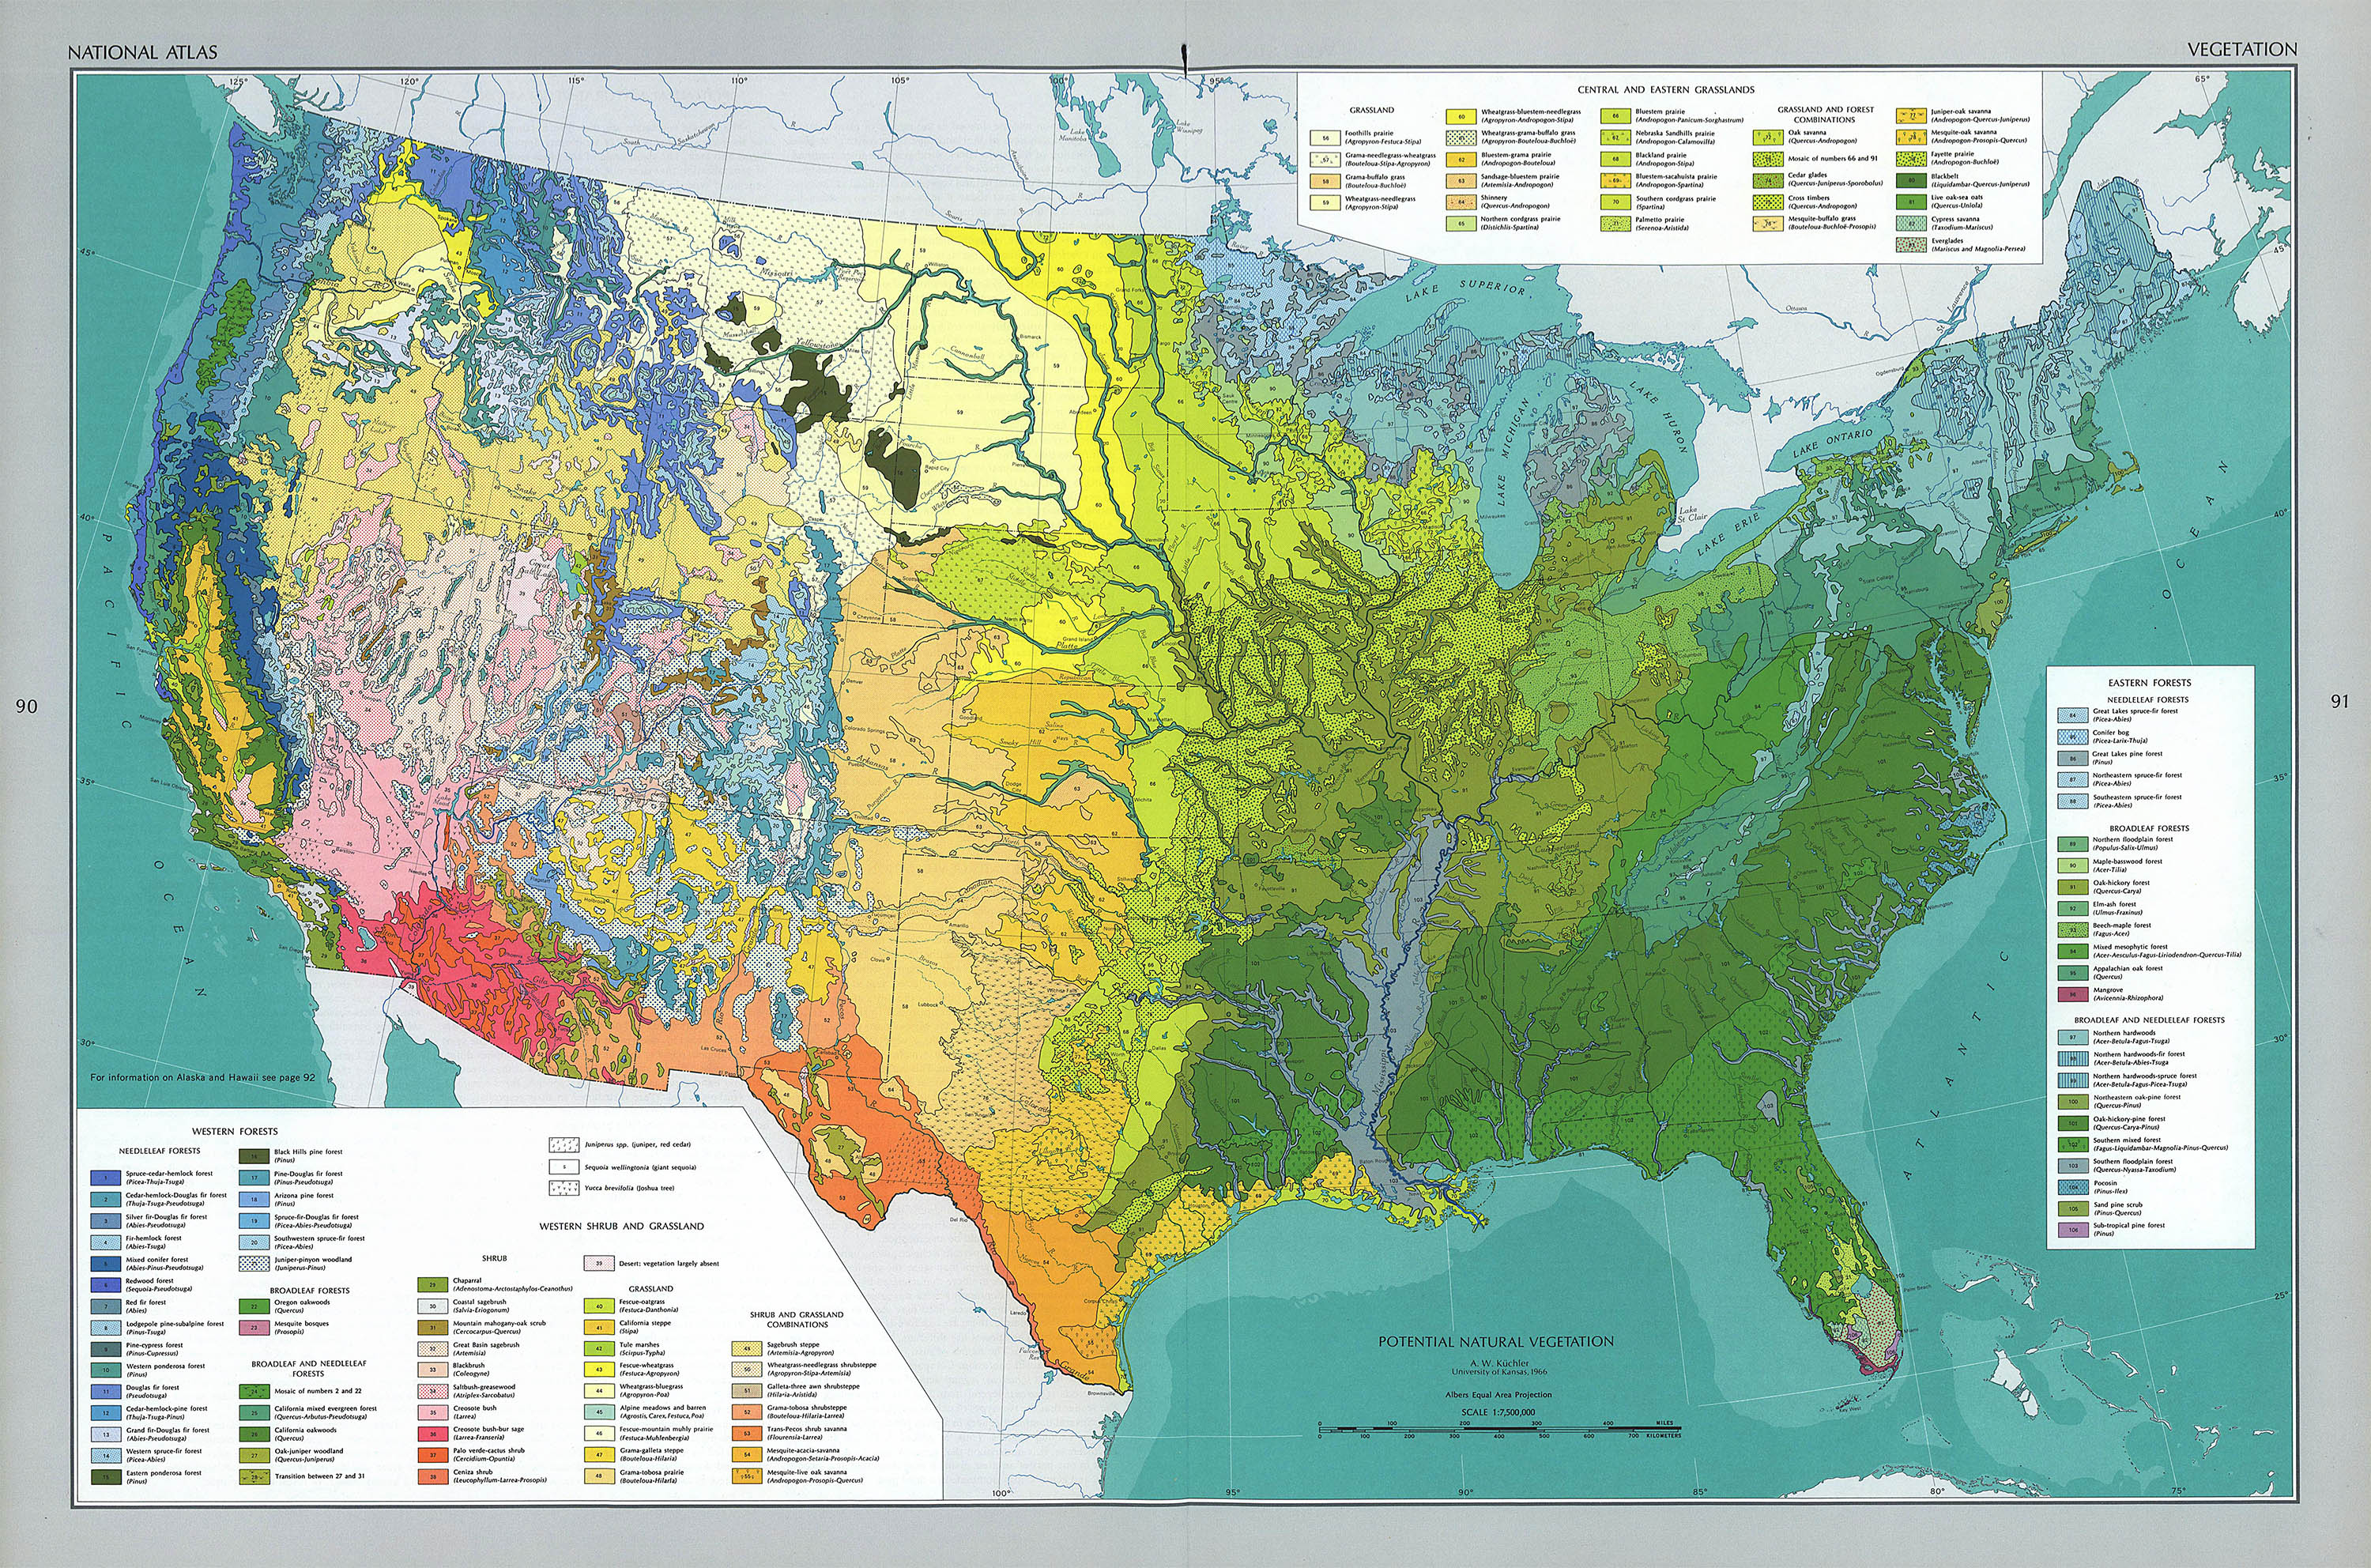 Map Of America 52 States.The National Atlas